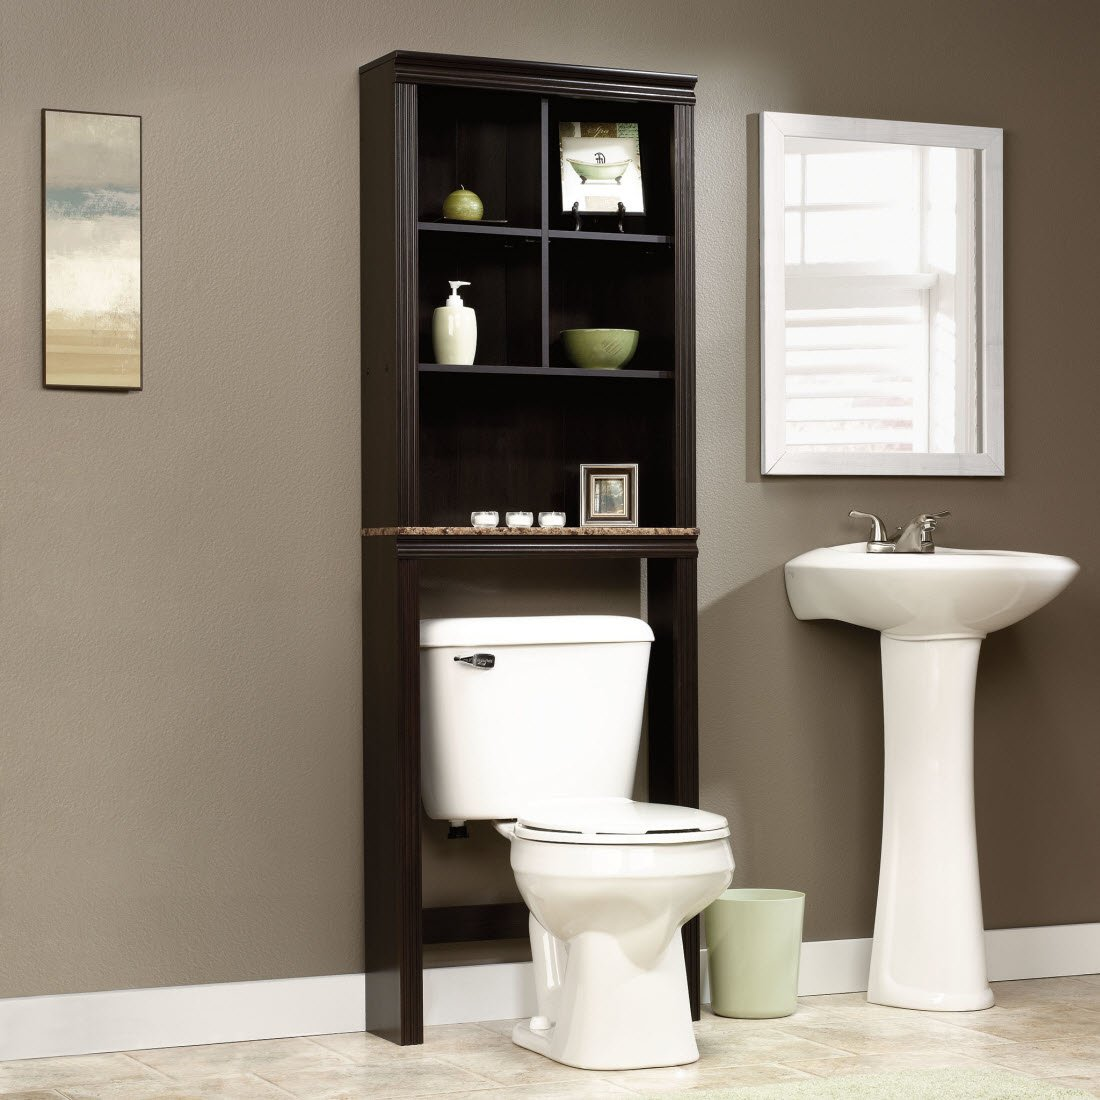 Amazon.com: Over The Toilet Cabinet With Open Shelves: Kitchen U0026 Dining